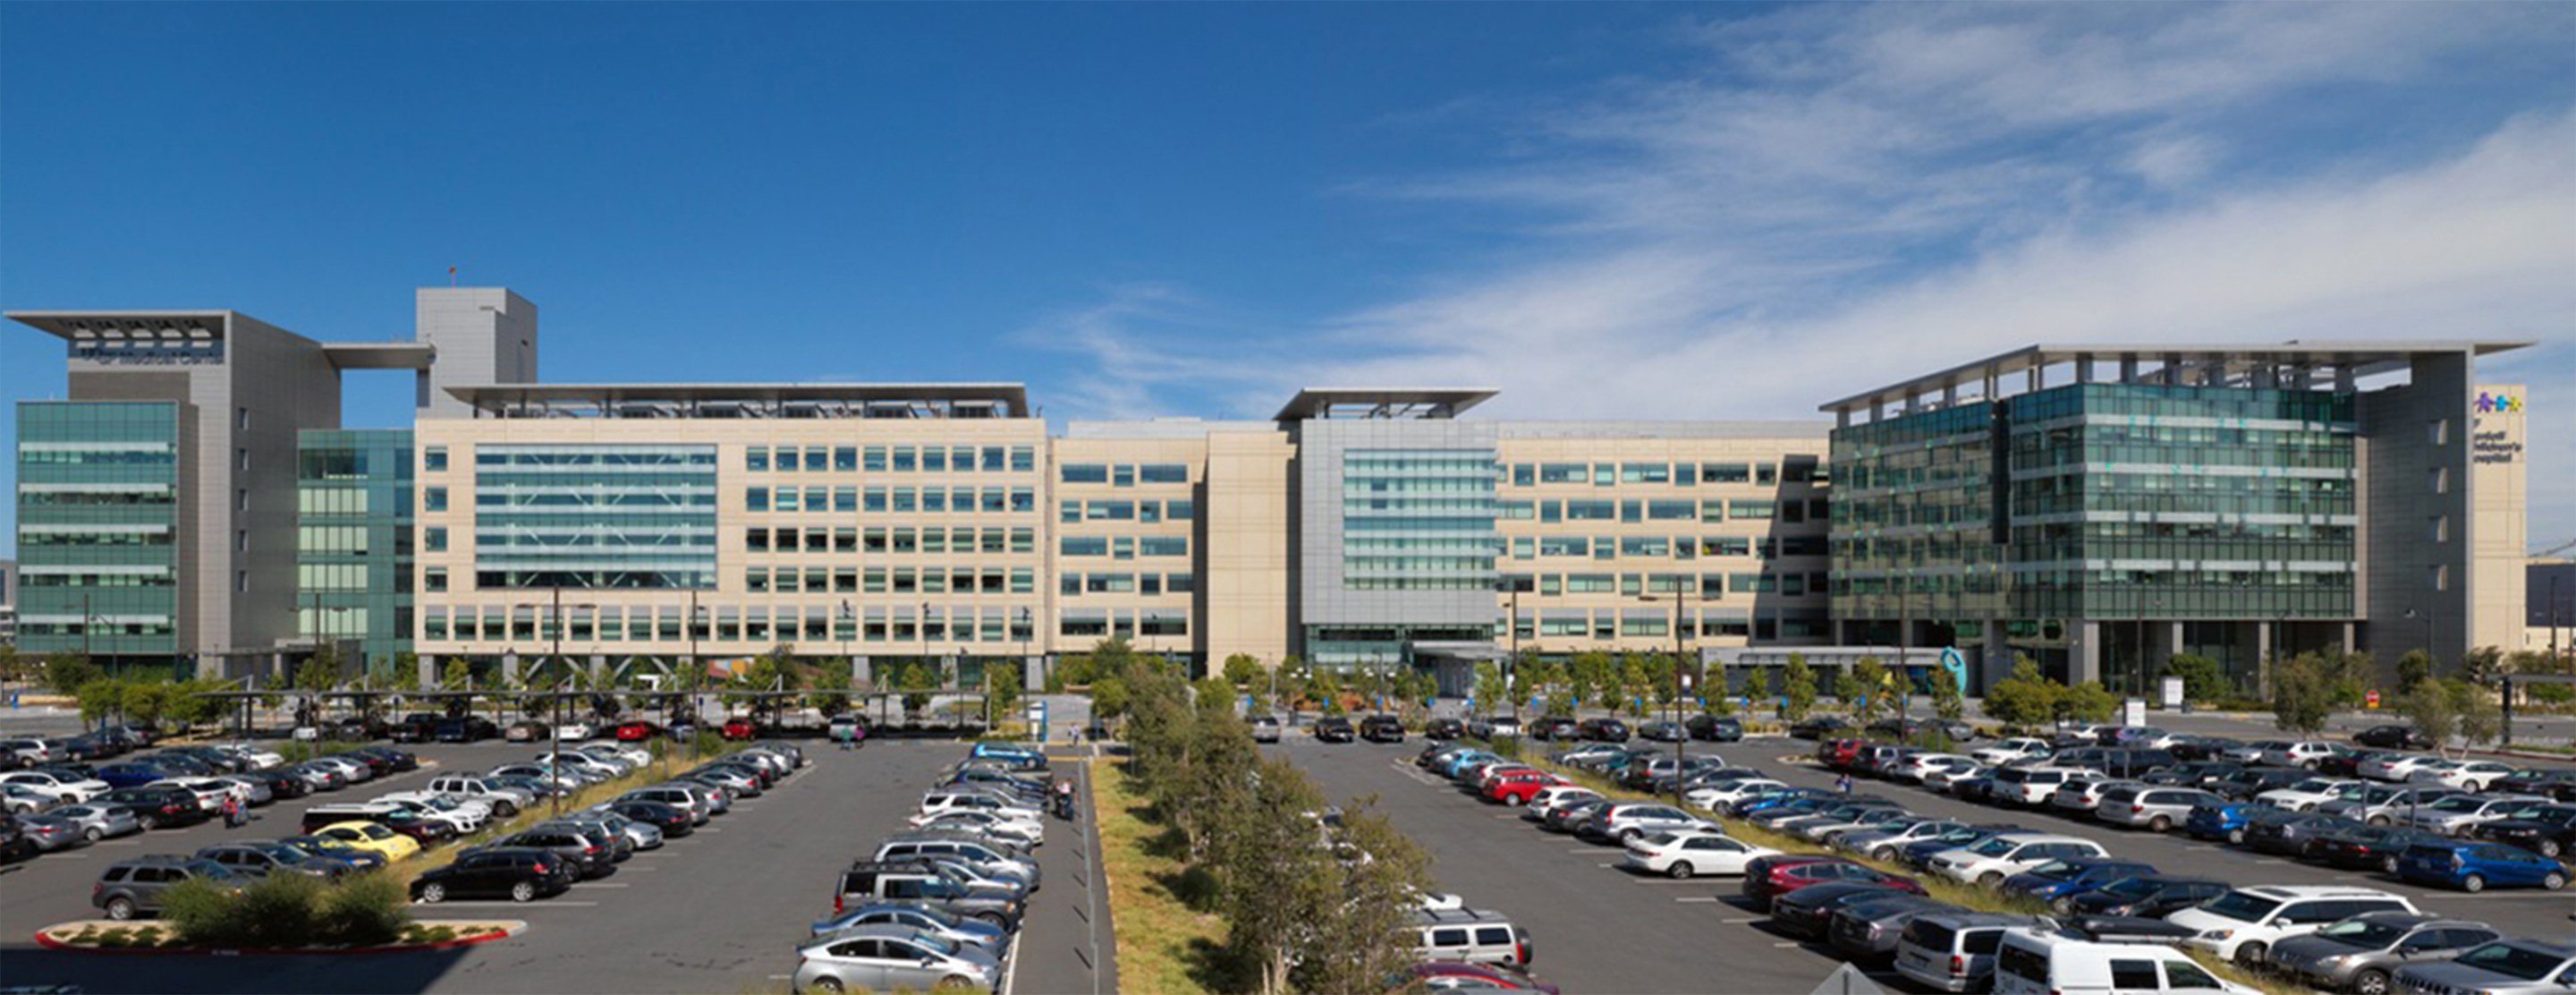 Mission Bay campus buildings and parking lot